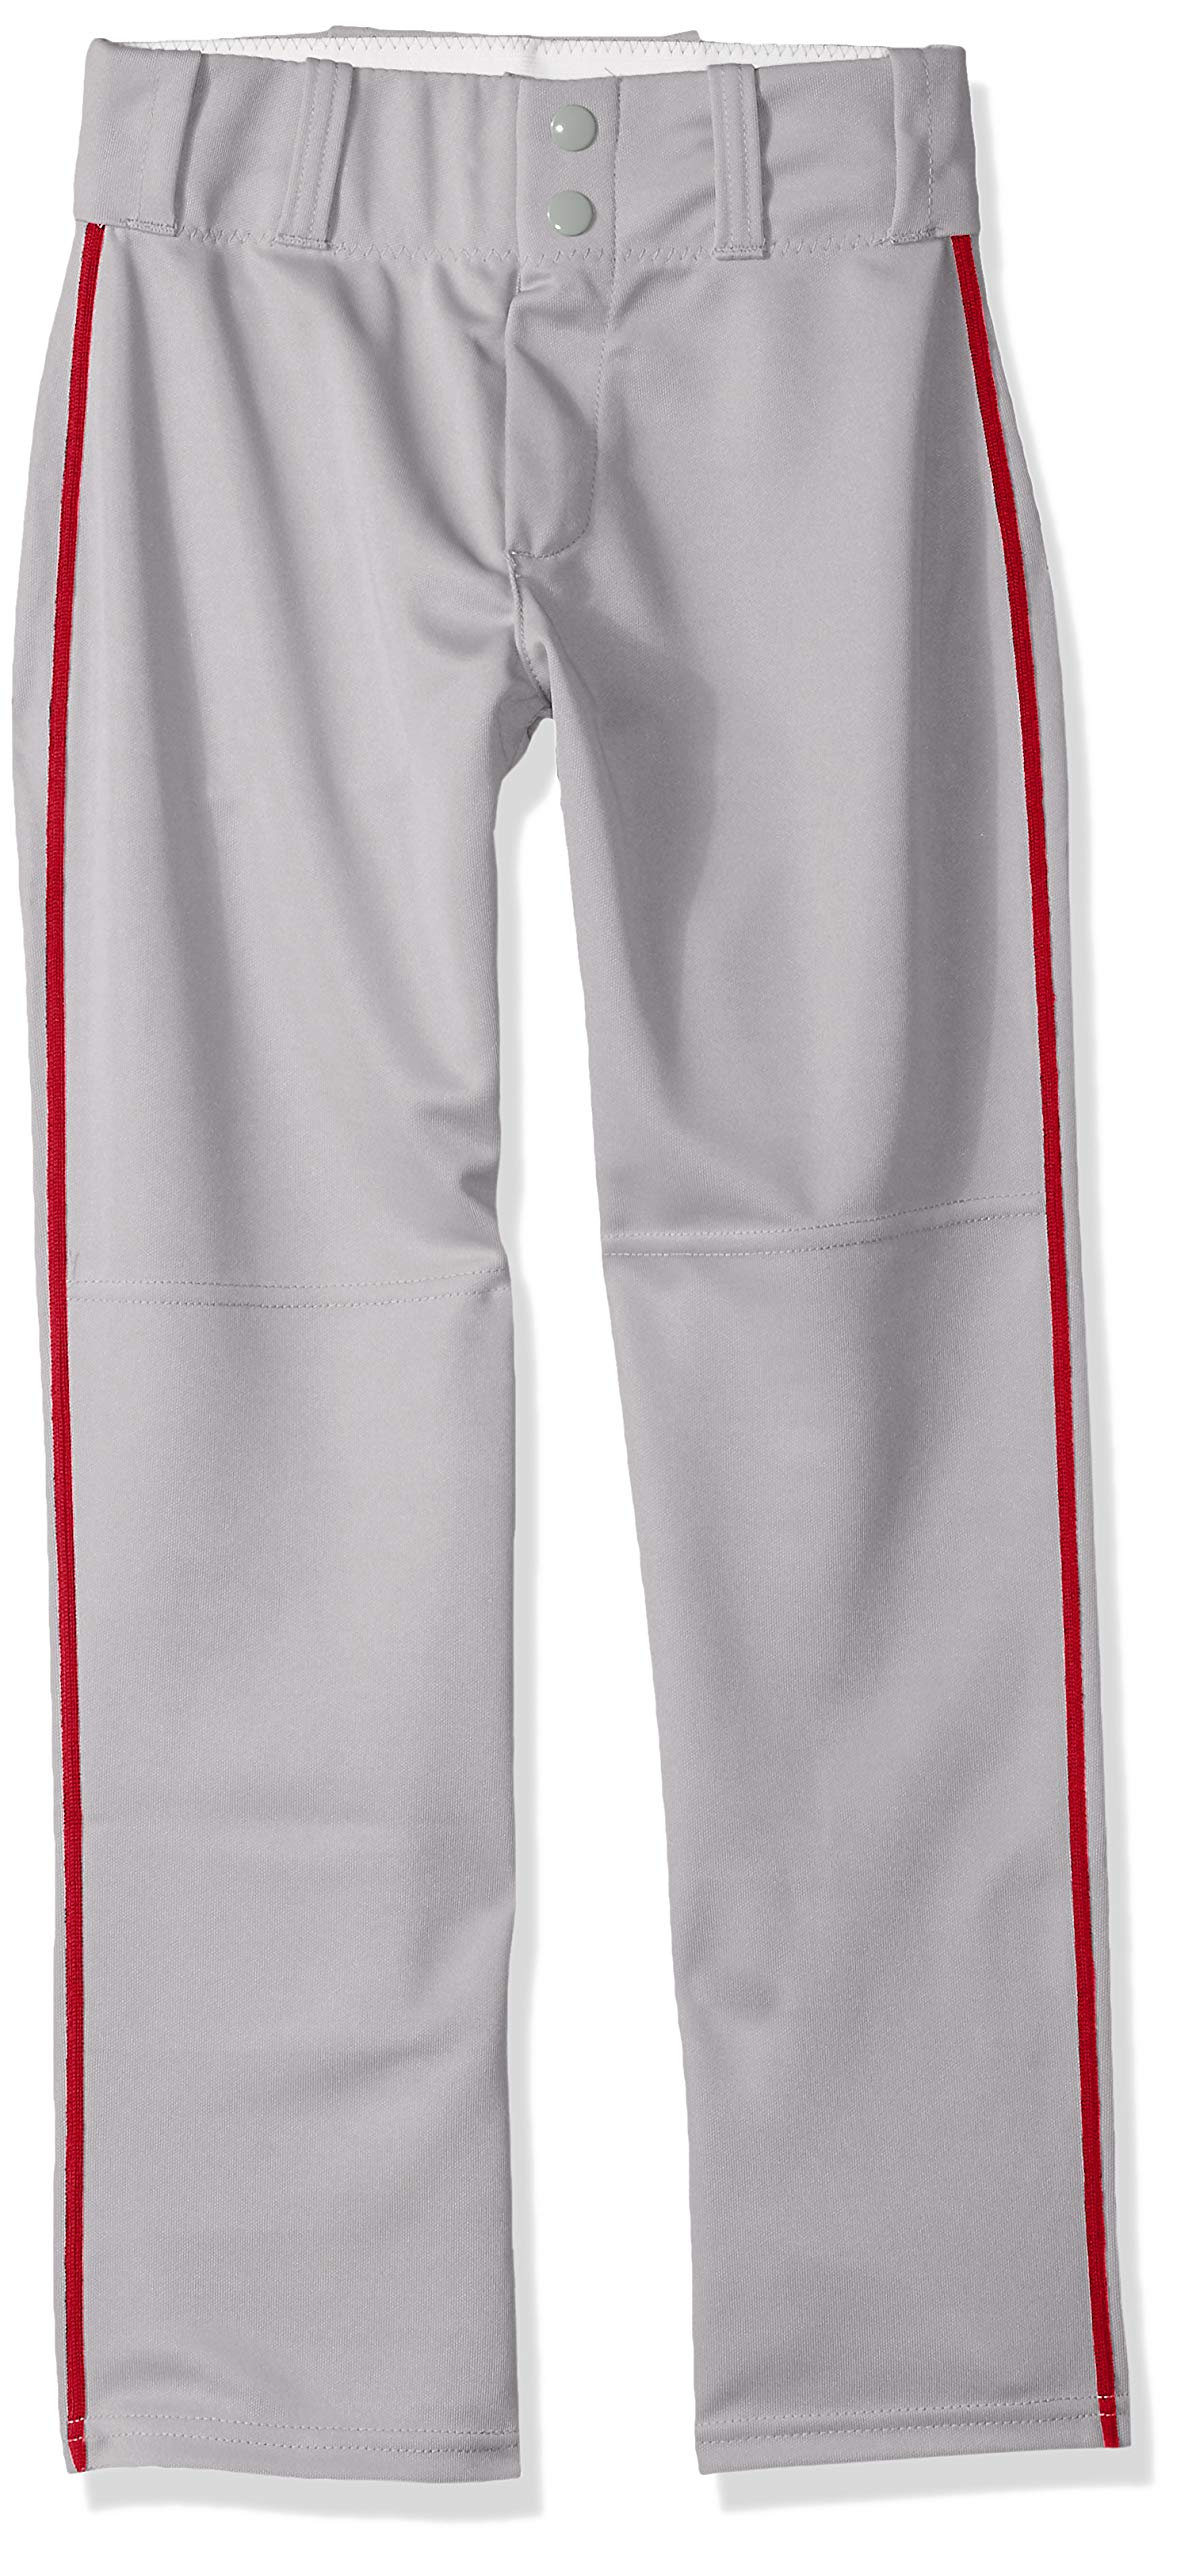 Alleson Ahtletic Boys Youth Baseball Pants with Braid, Grey/Scarlet, Small by Alleson Athletic